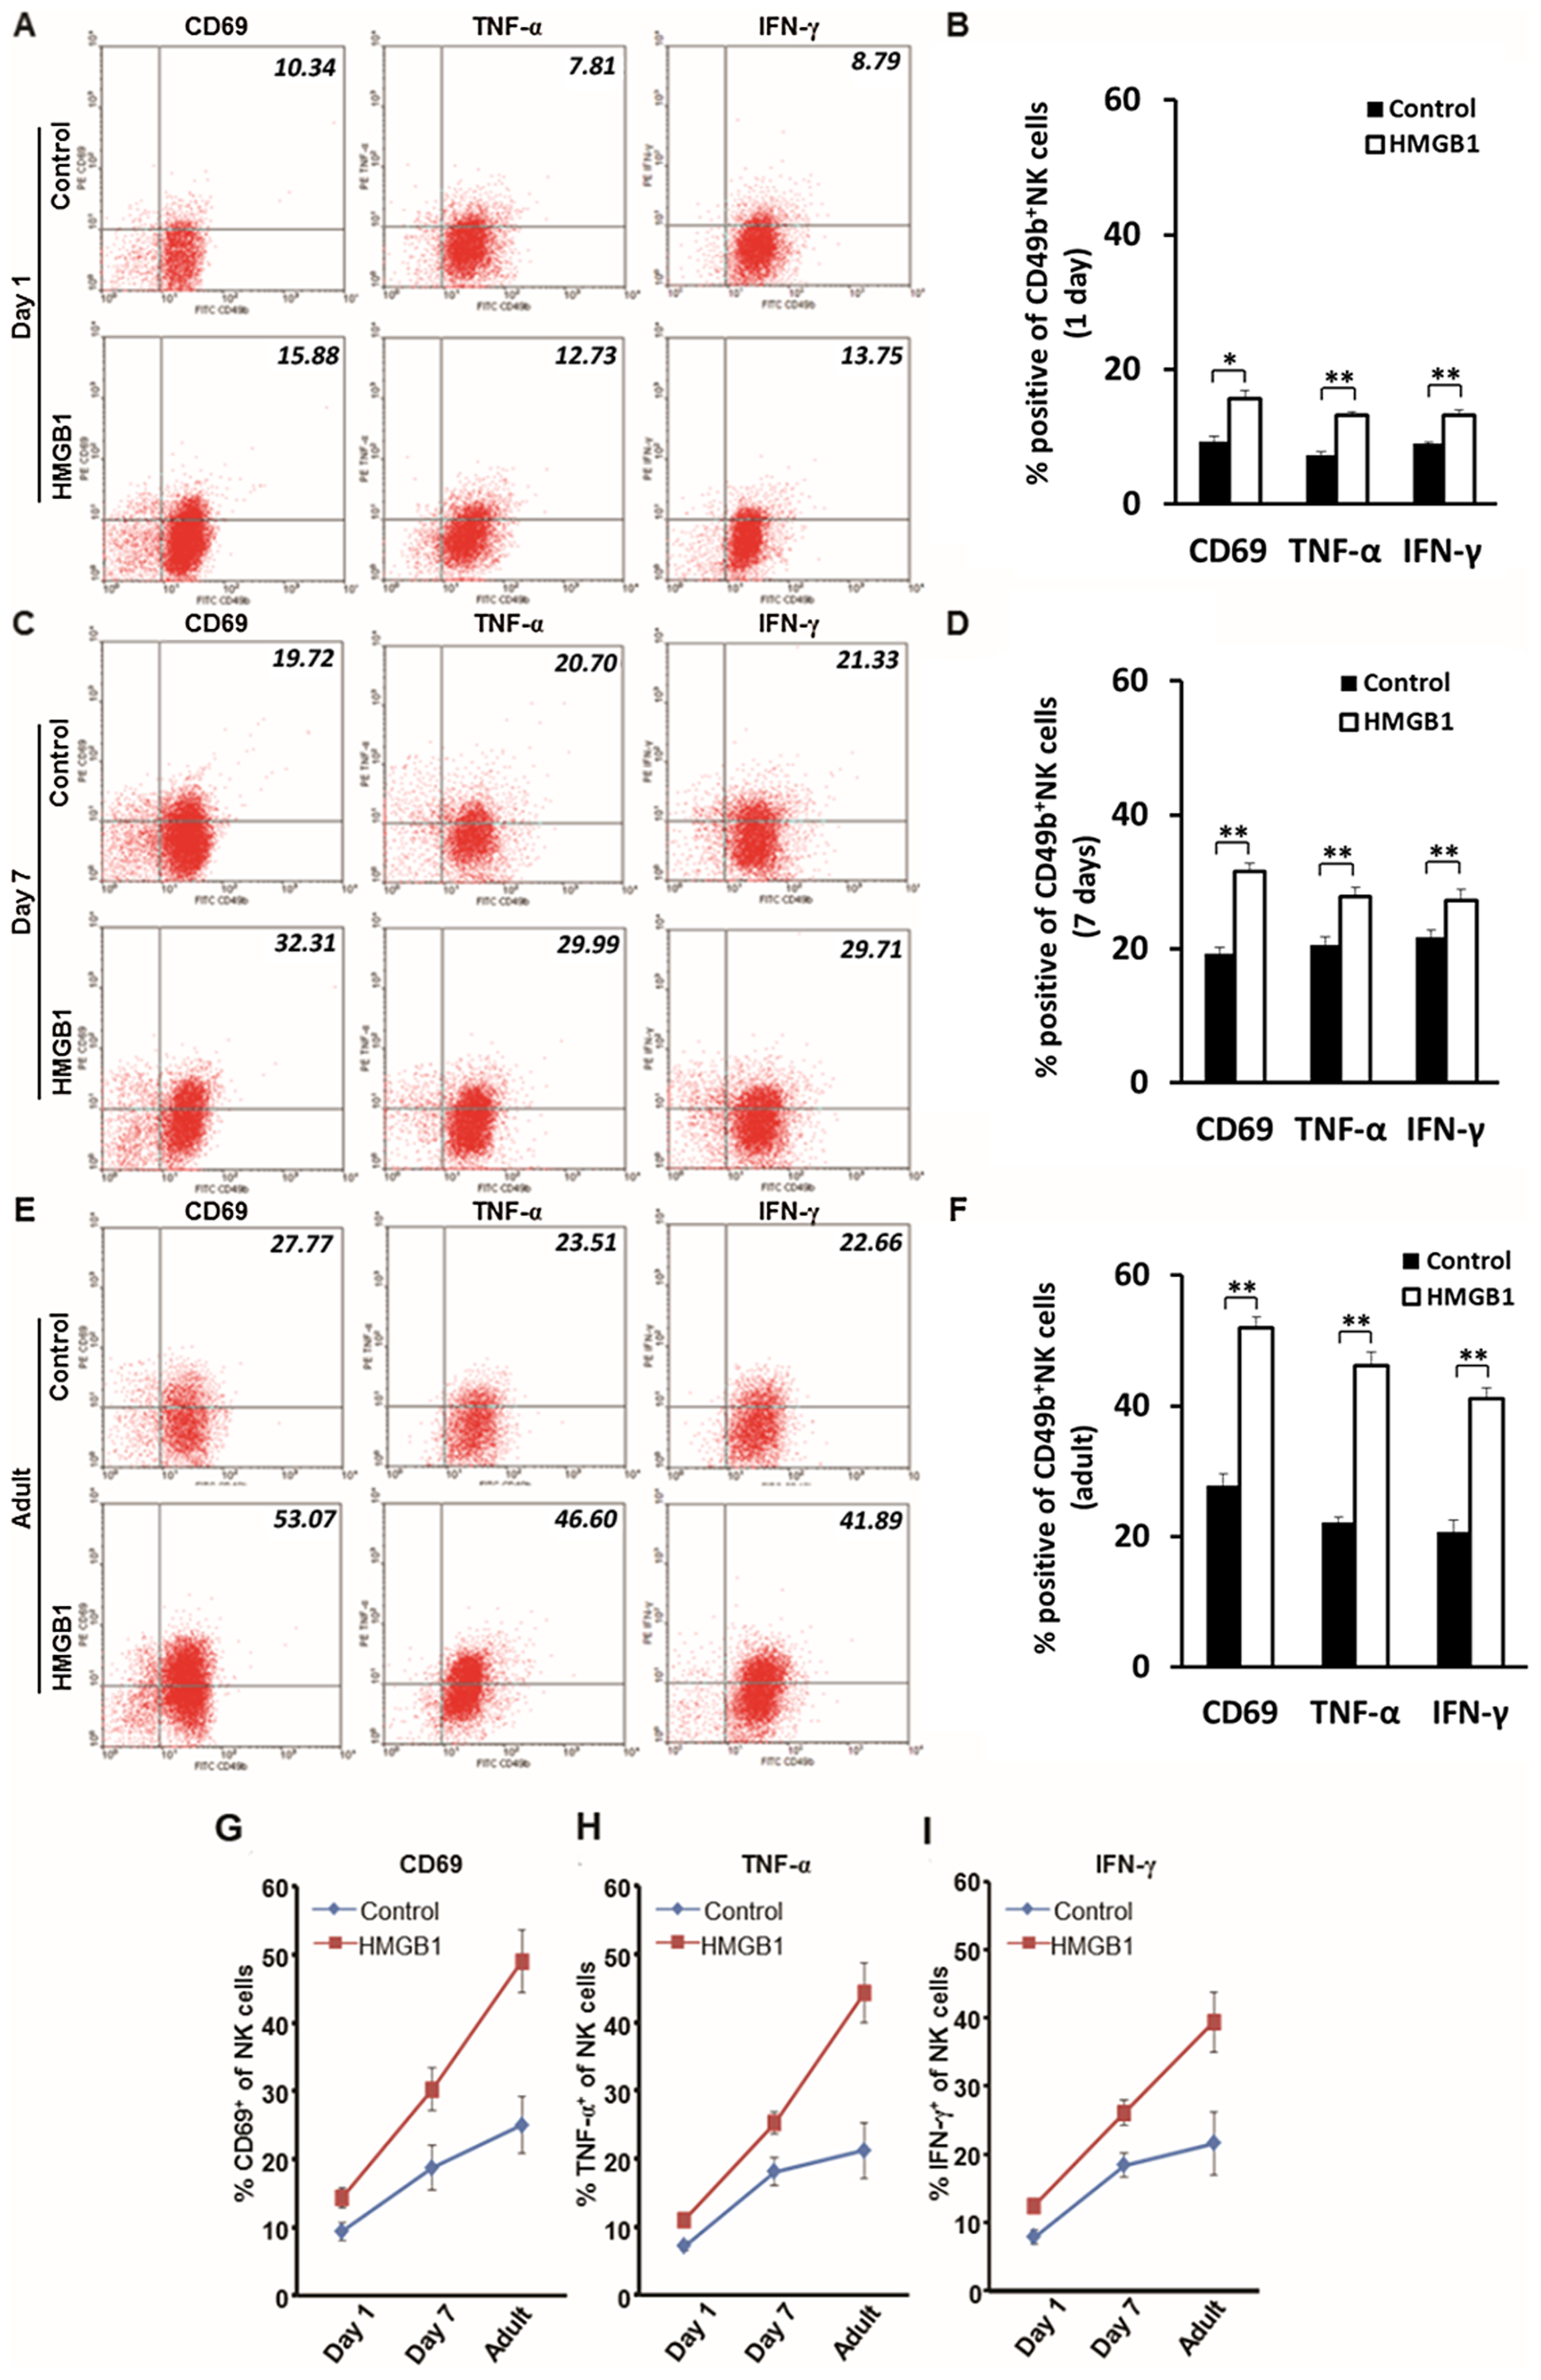 Age affects the activation of NK cells <i>in vitro</i>.